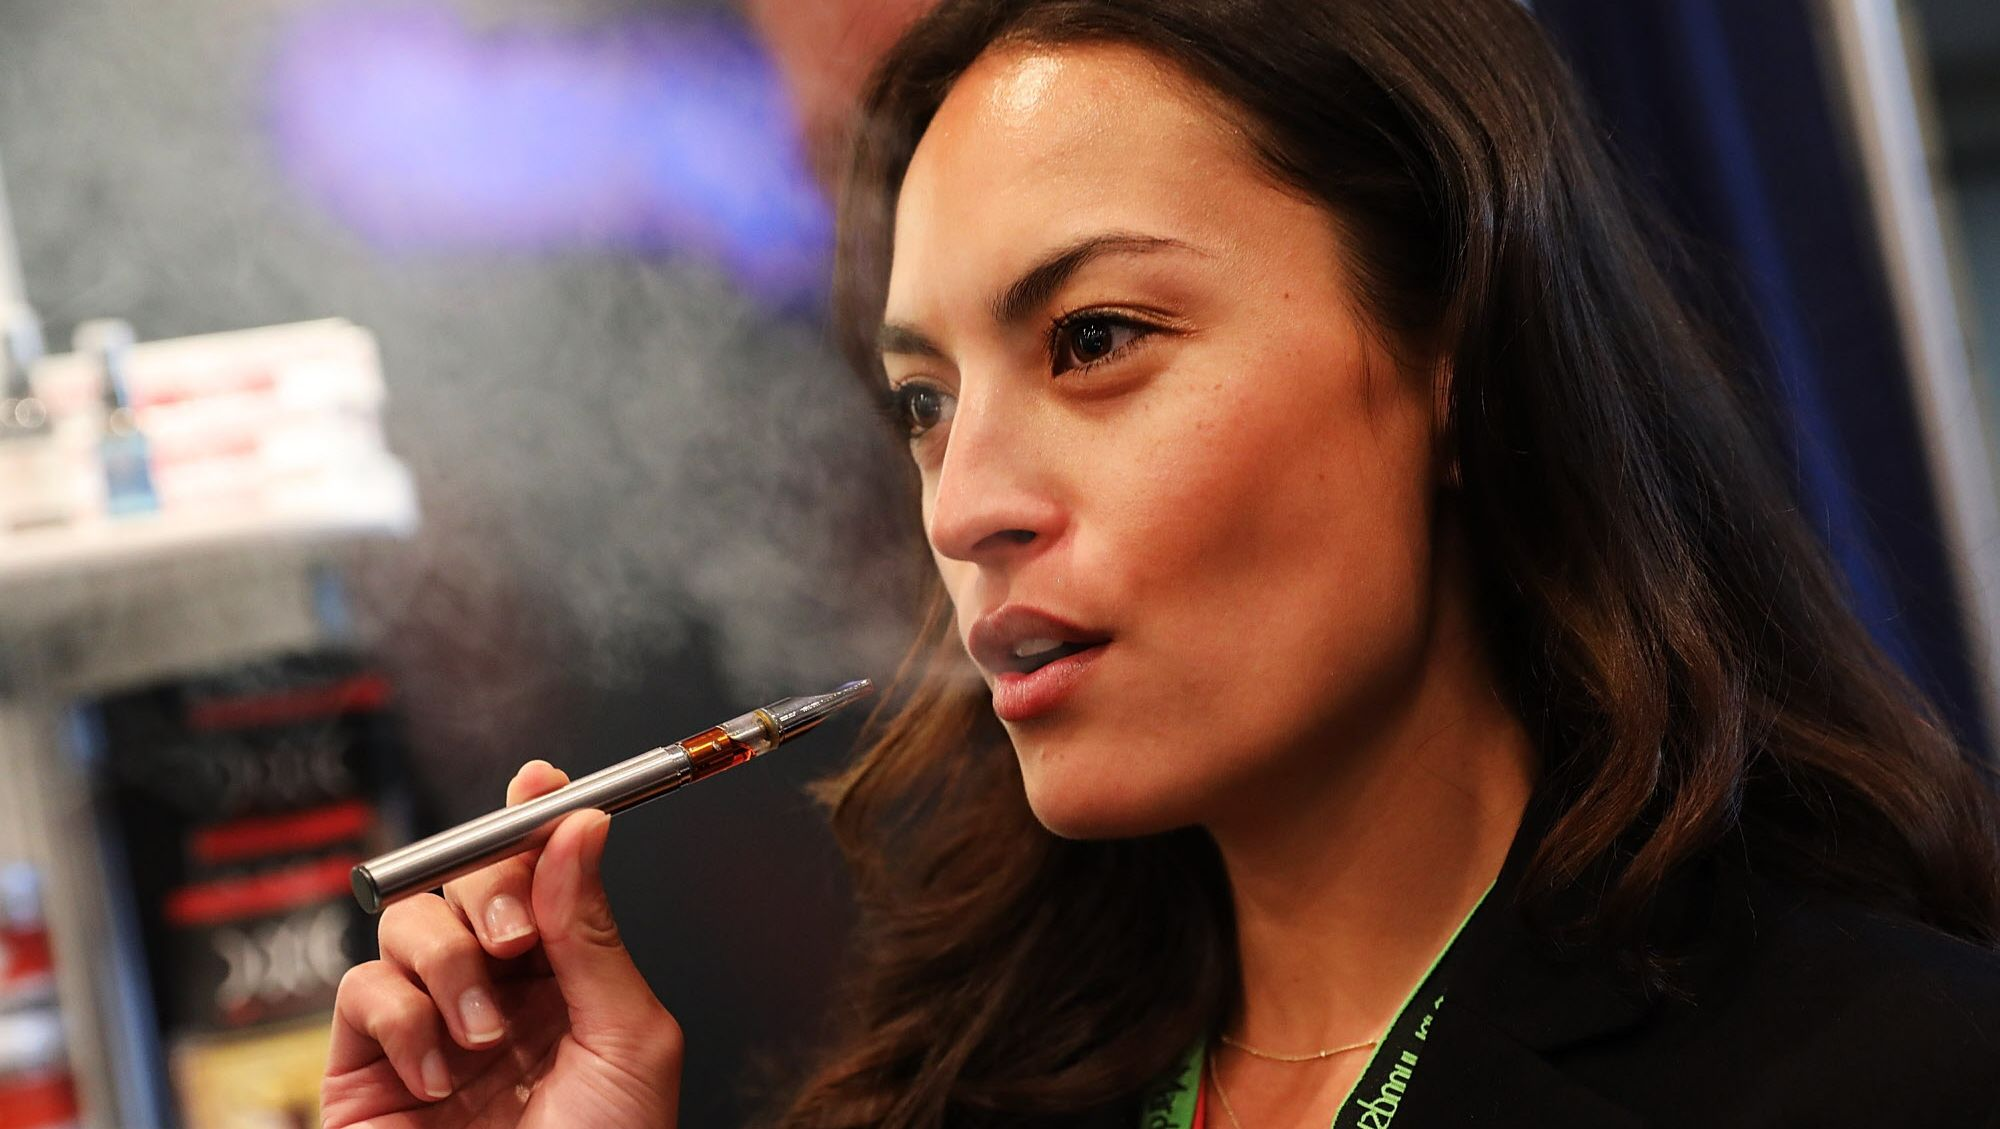 An attendee vapes a CBD oil pen made from hemp at the Cannabis World Congress Conference on June 16, 2017 in New York City.